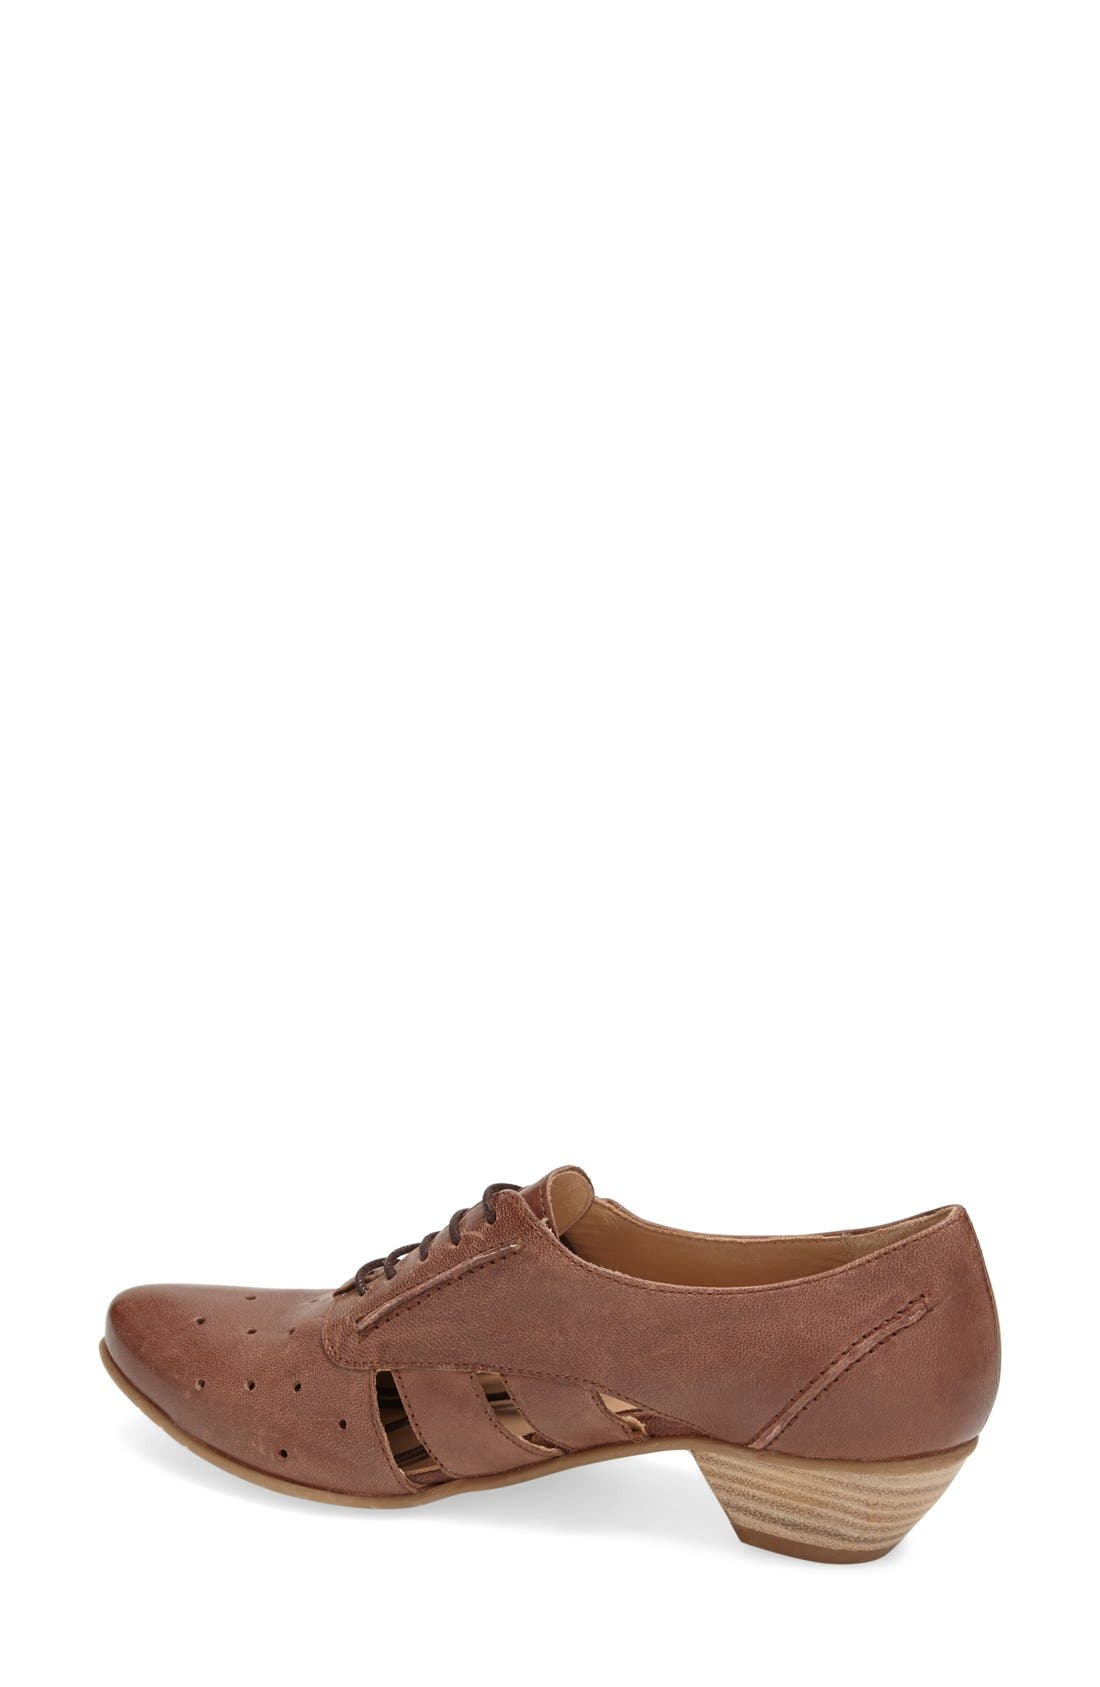 'VO92' Perforated Leather Pump,                             Alternate thumbnail 2, color,                             BROWN